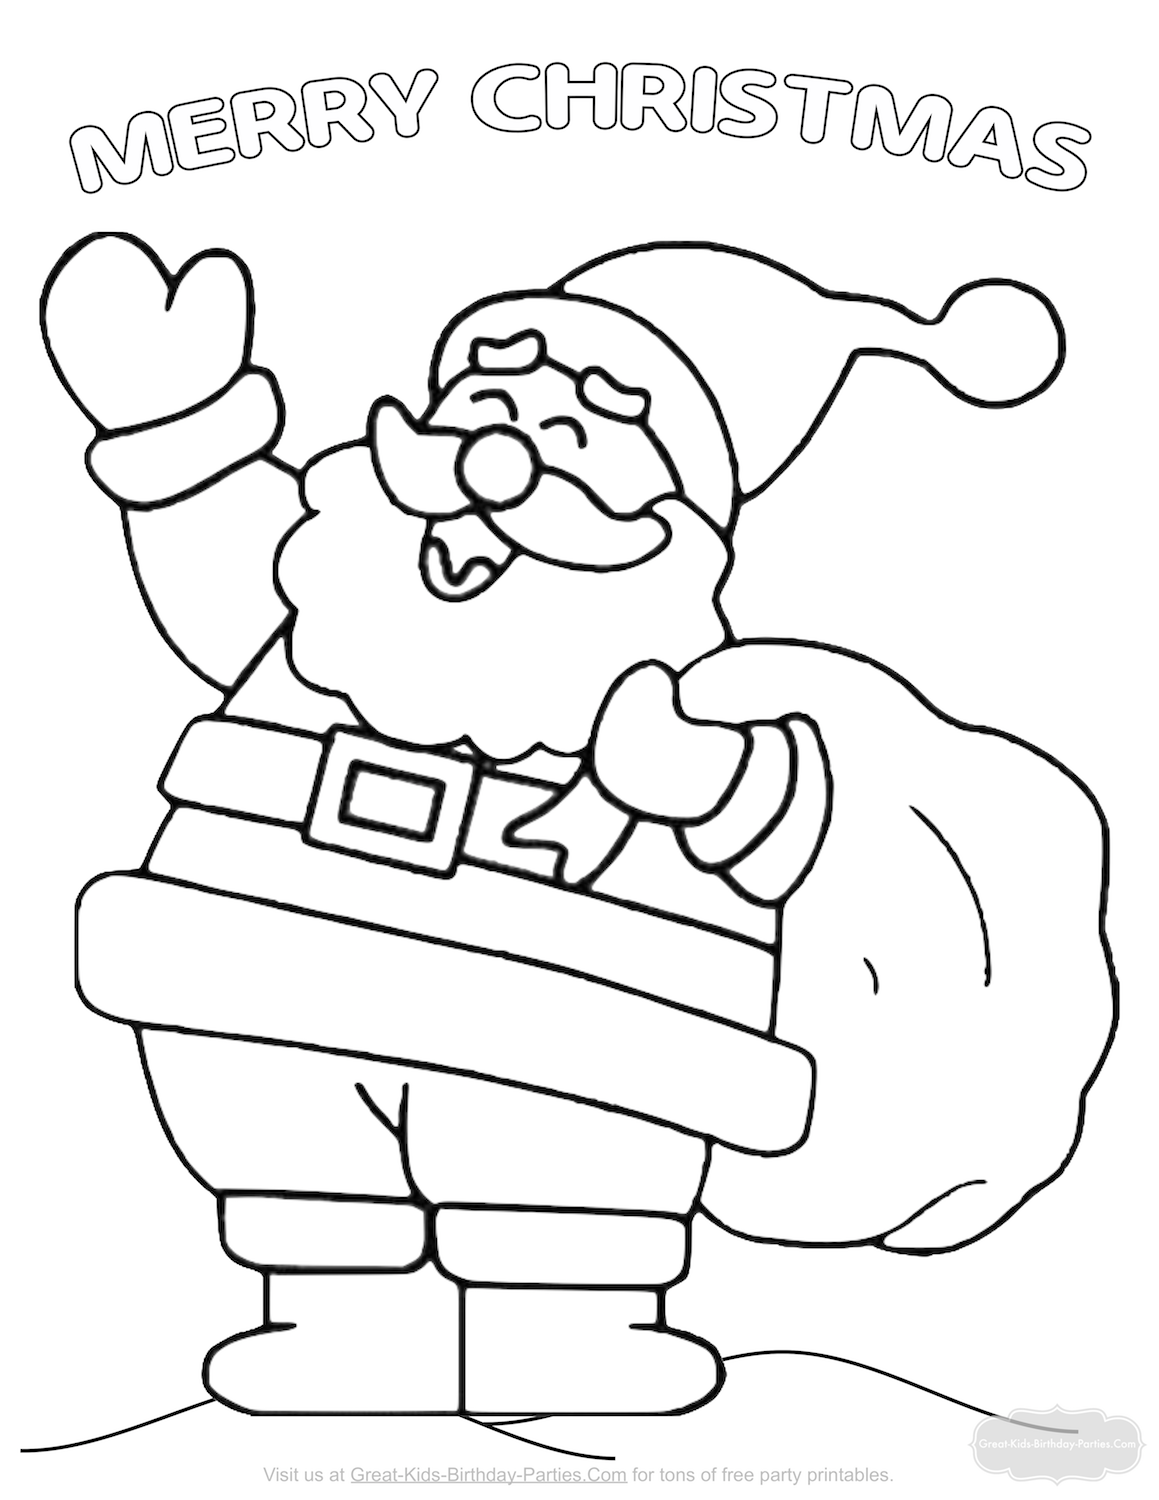 Santa Head Coloring Page With Christmas Pages